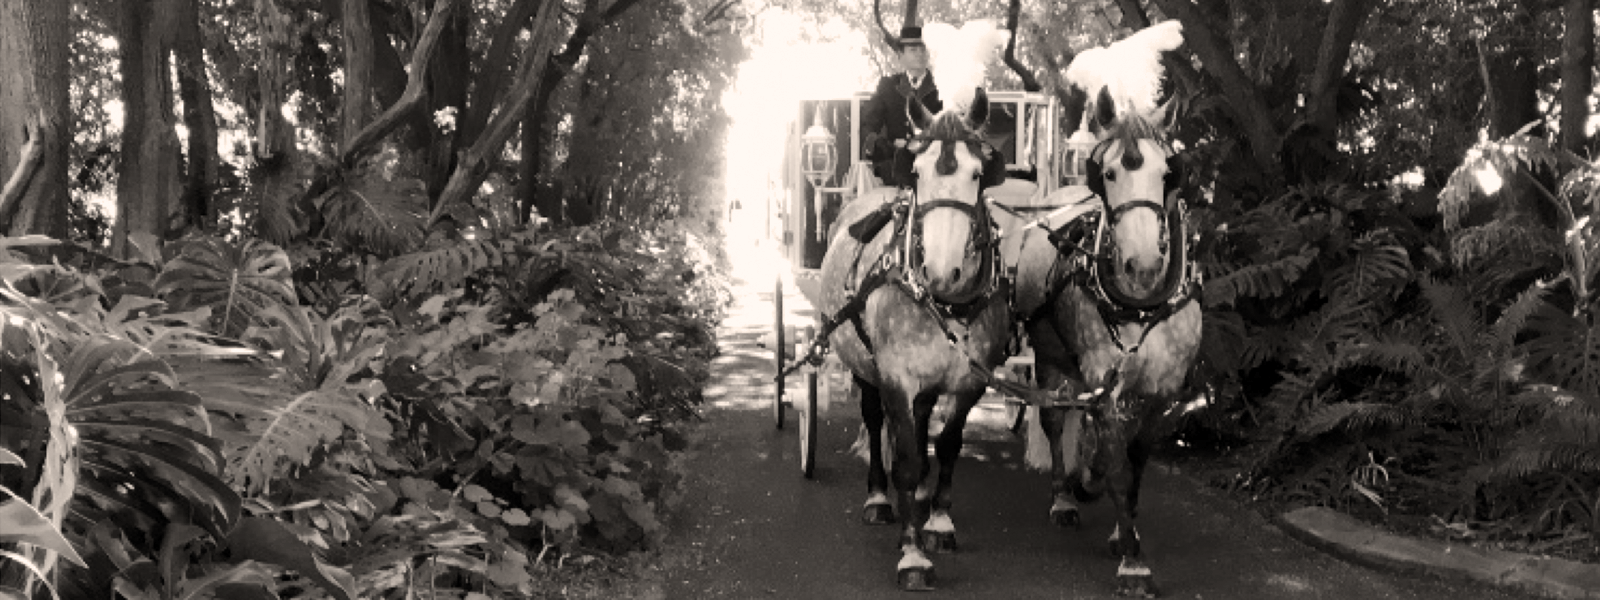 Perth-Horse-&-Carriage-Forrest